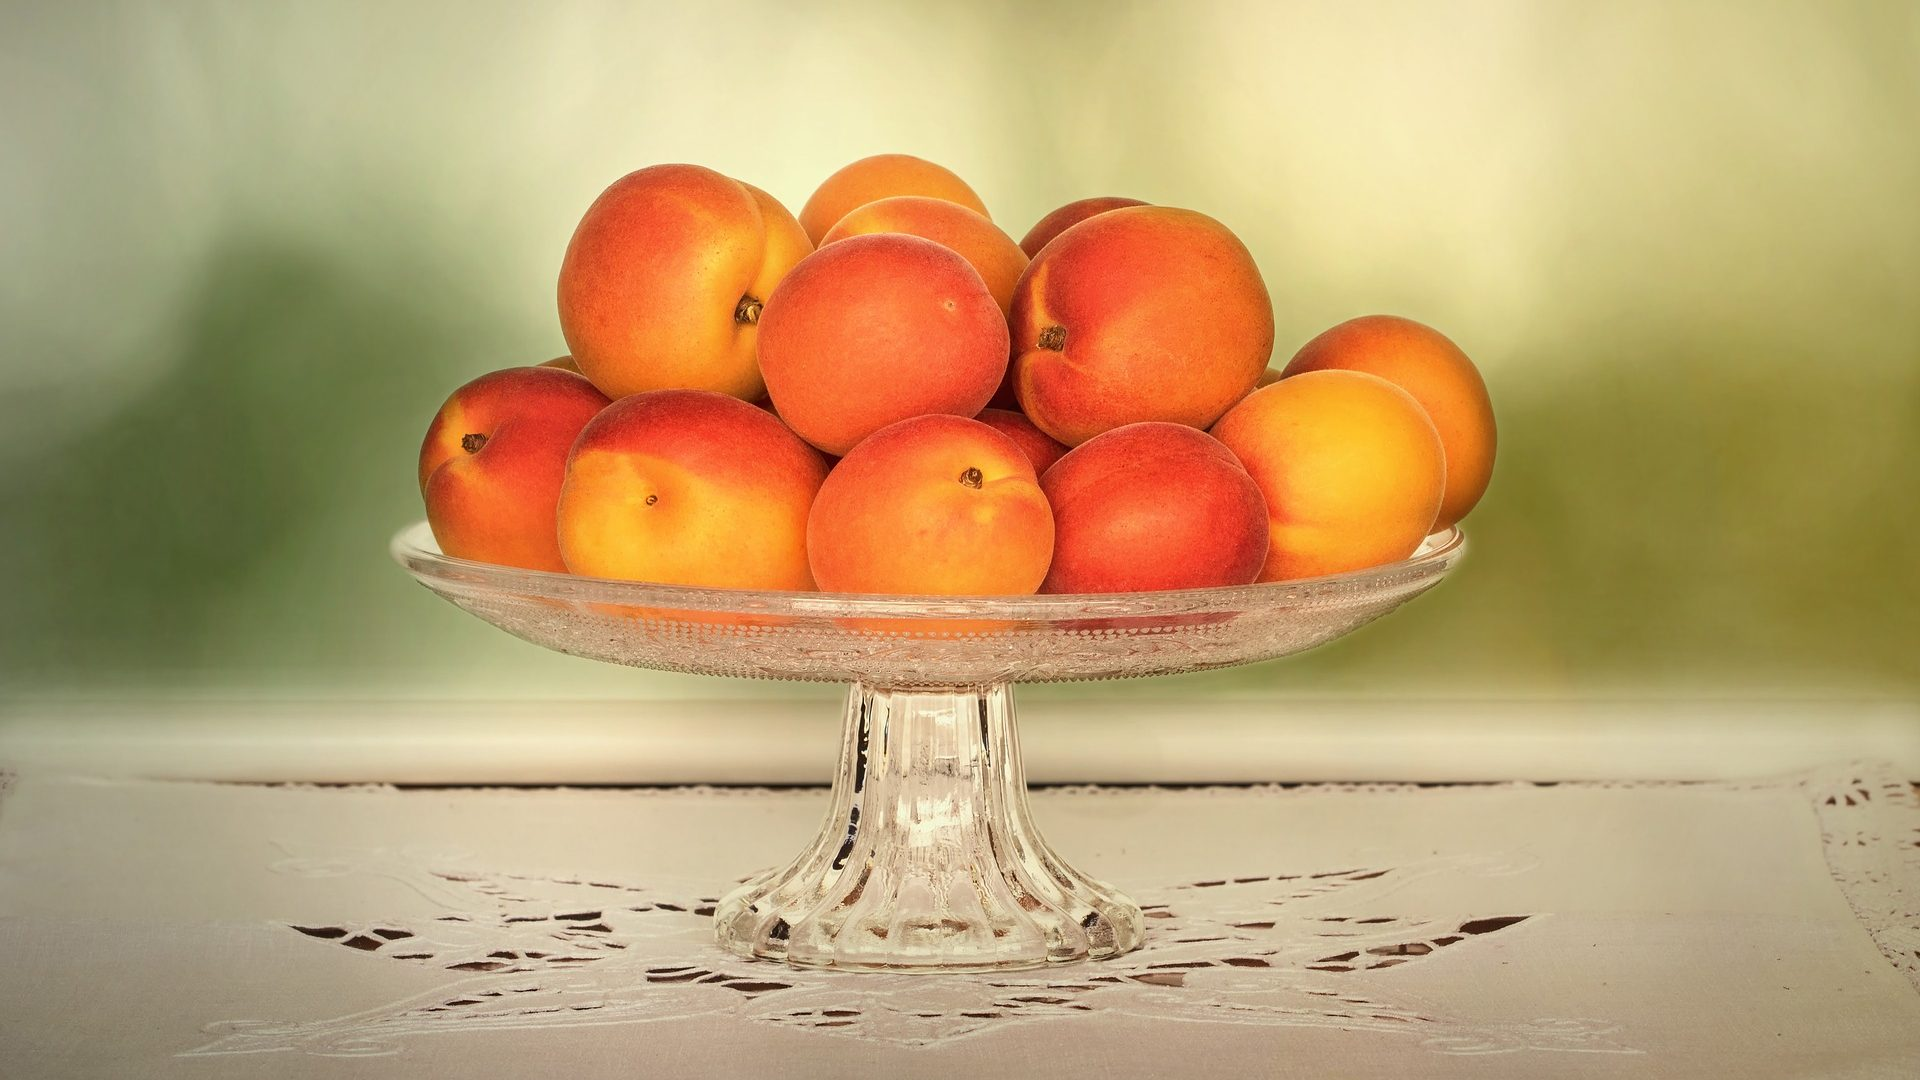 apricts nature-3465118_1920